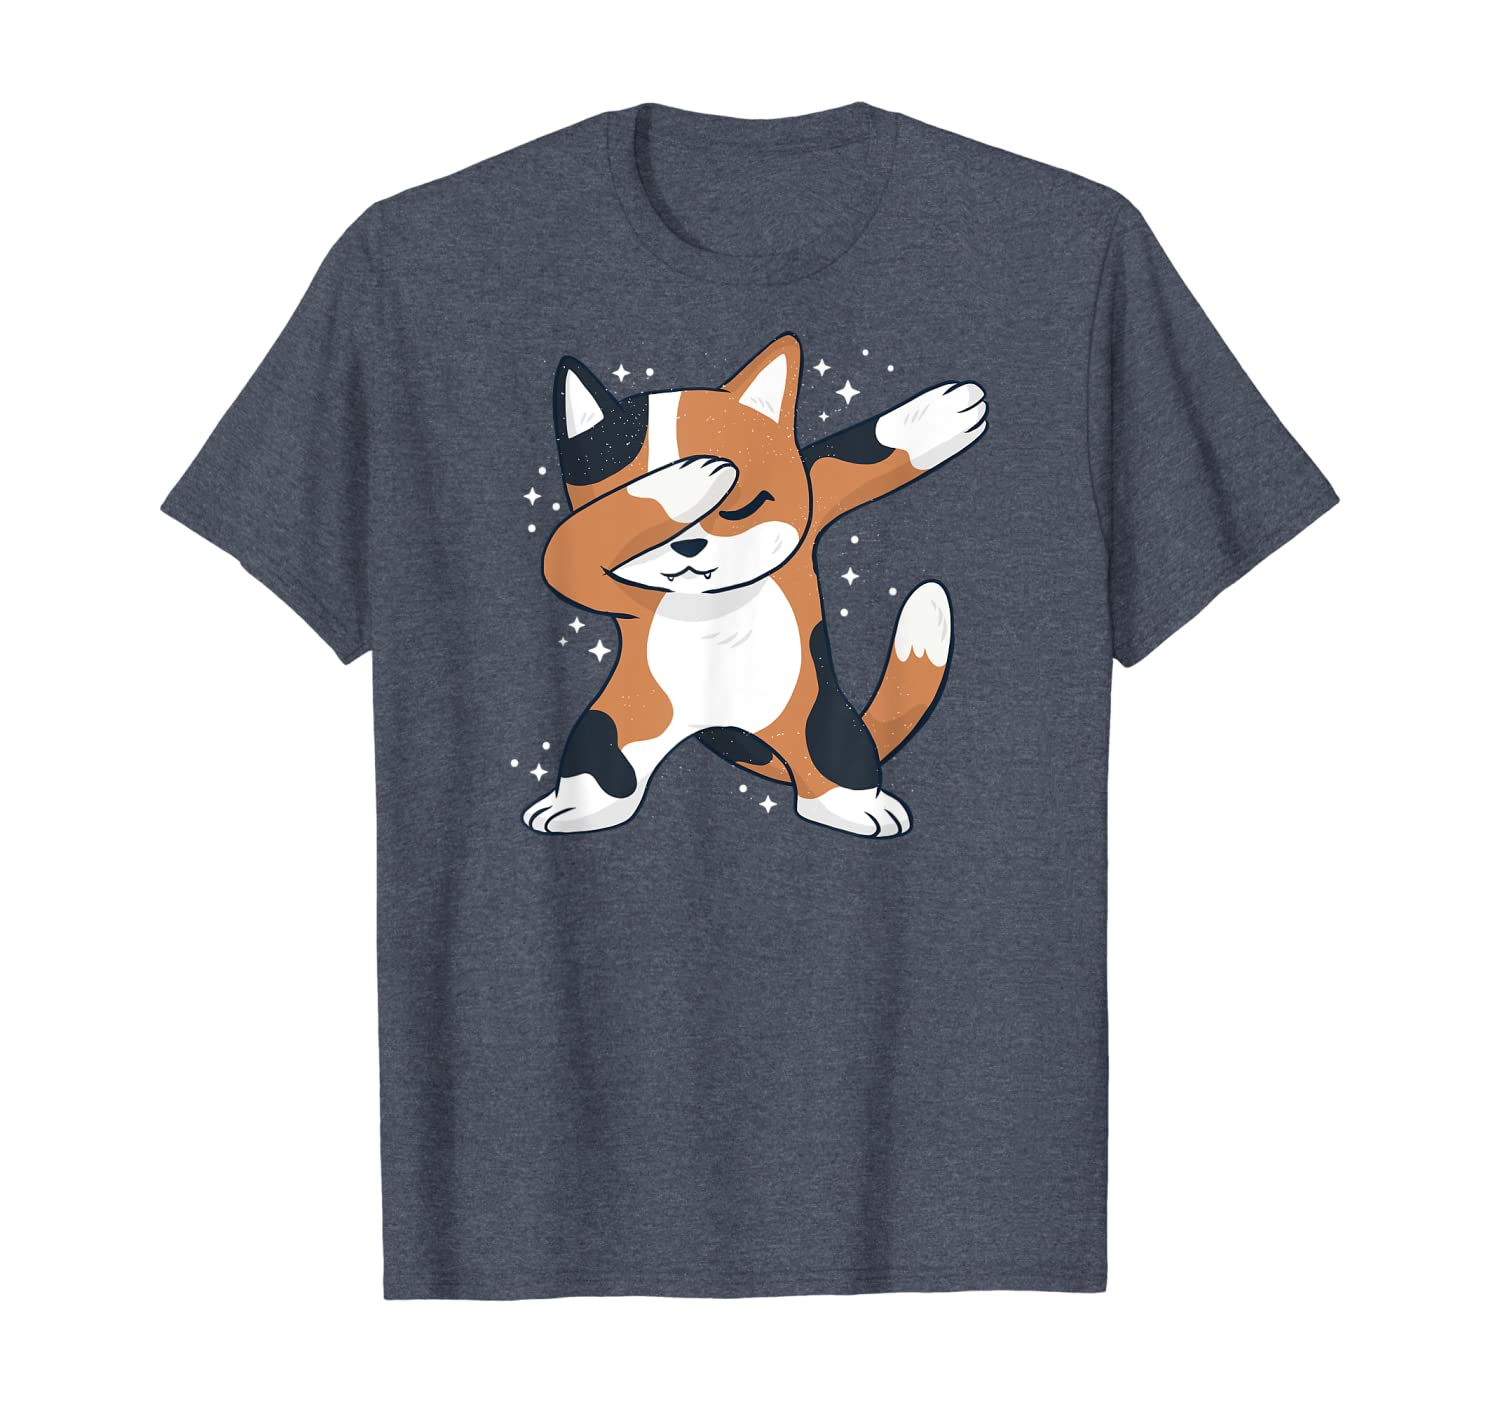 Cat In A Dab Dance Position – Funny Cat Dabbing T-shirt Unisex Tshirt